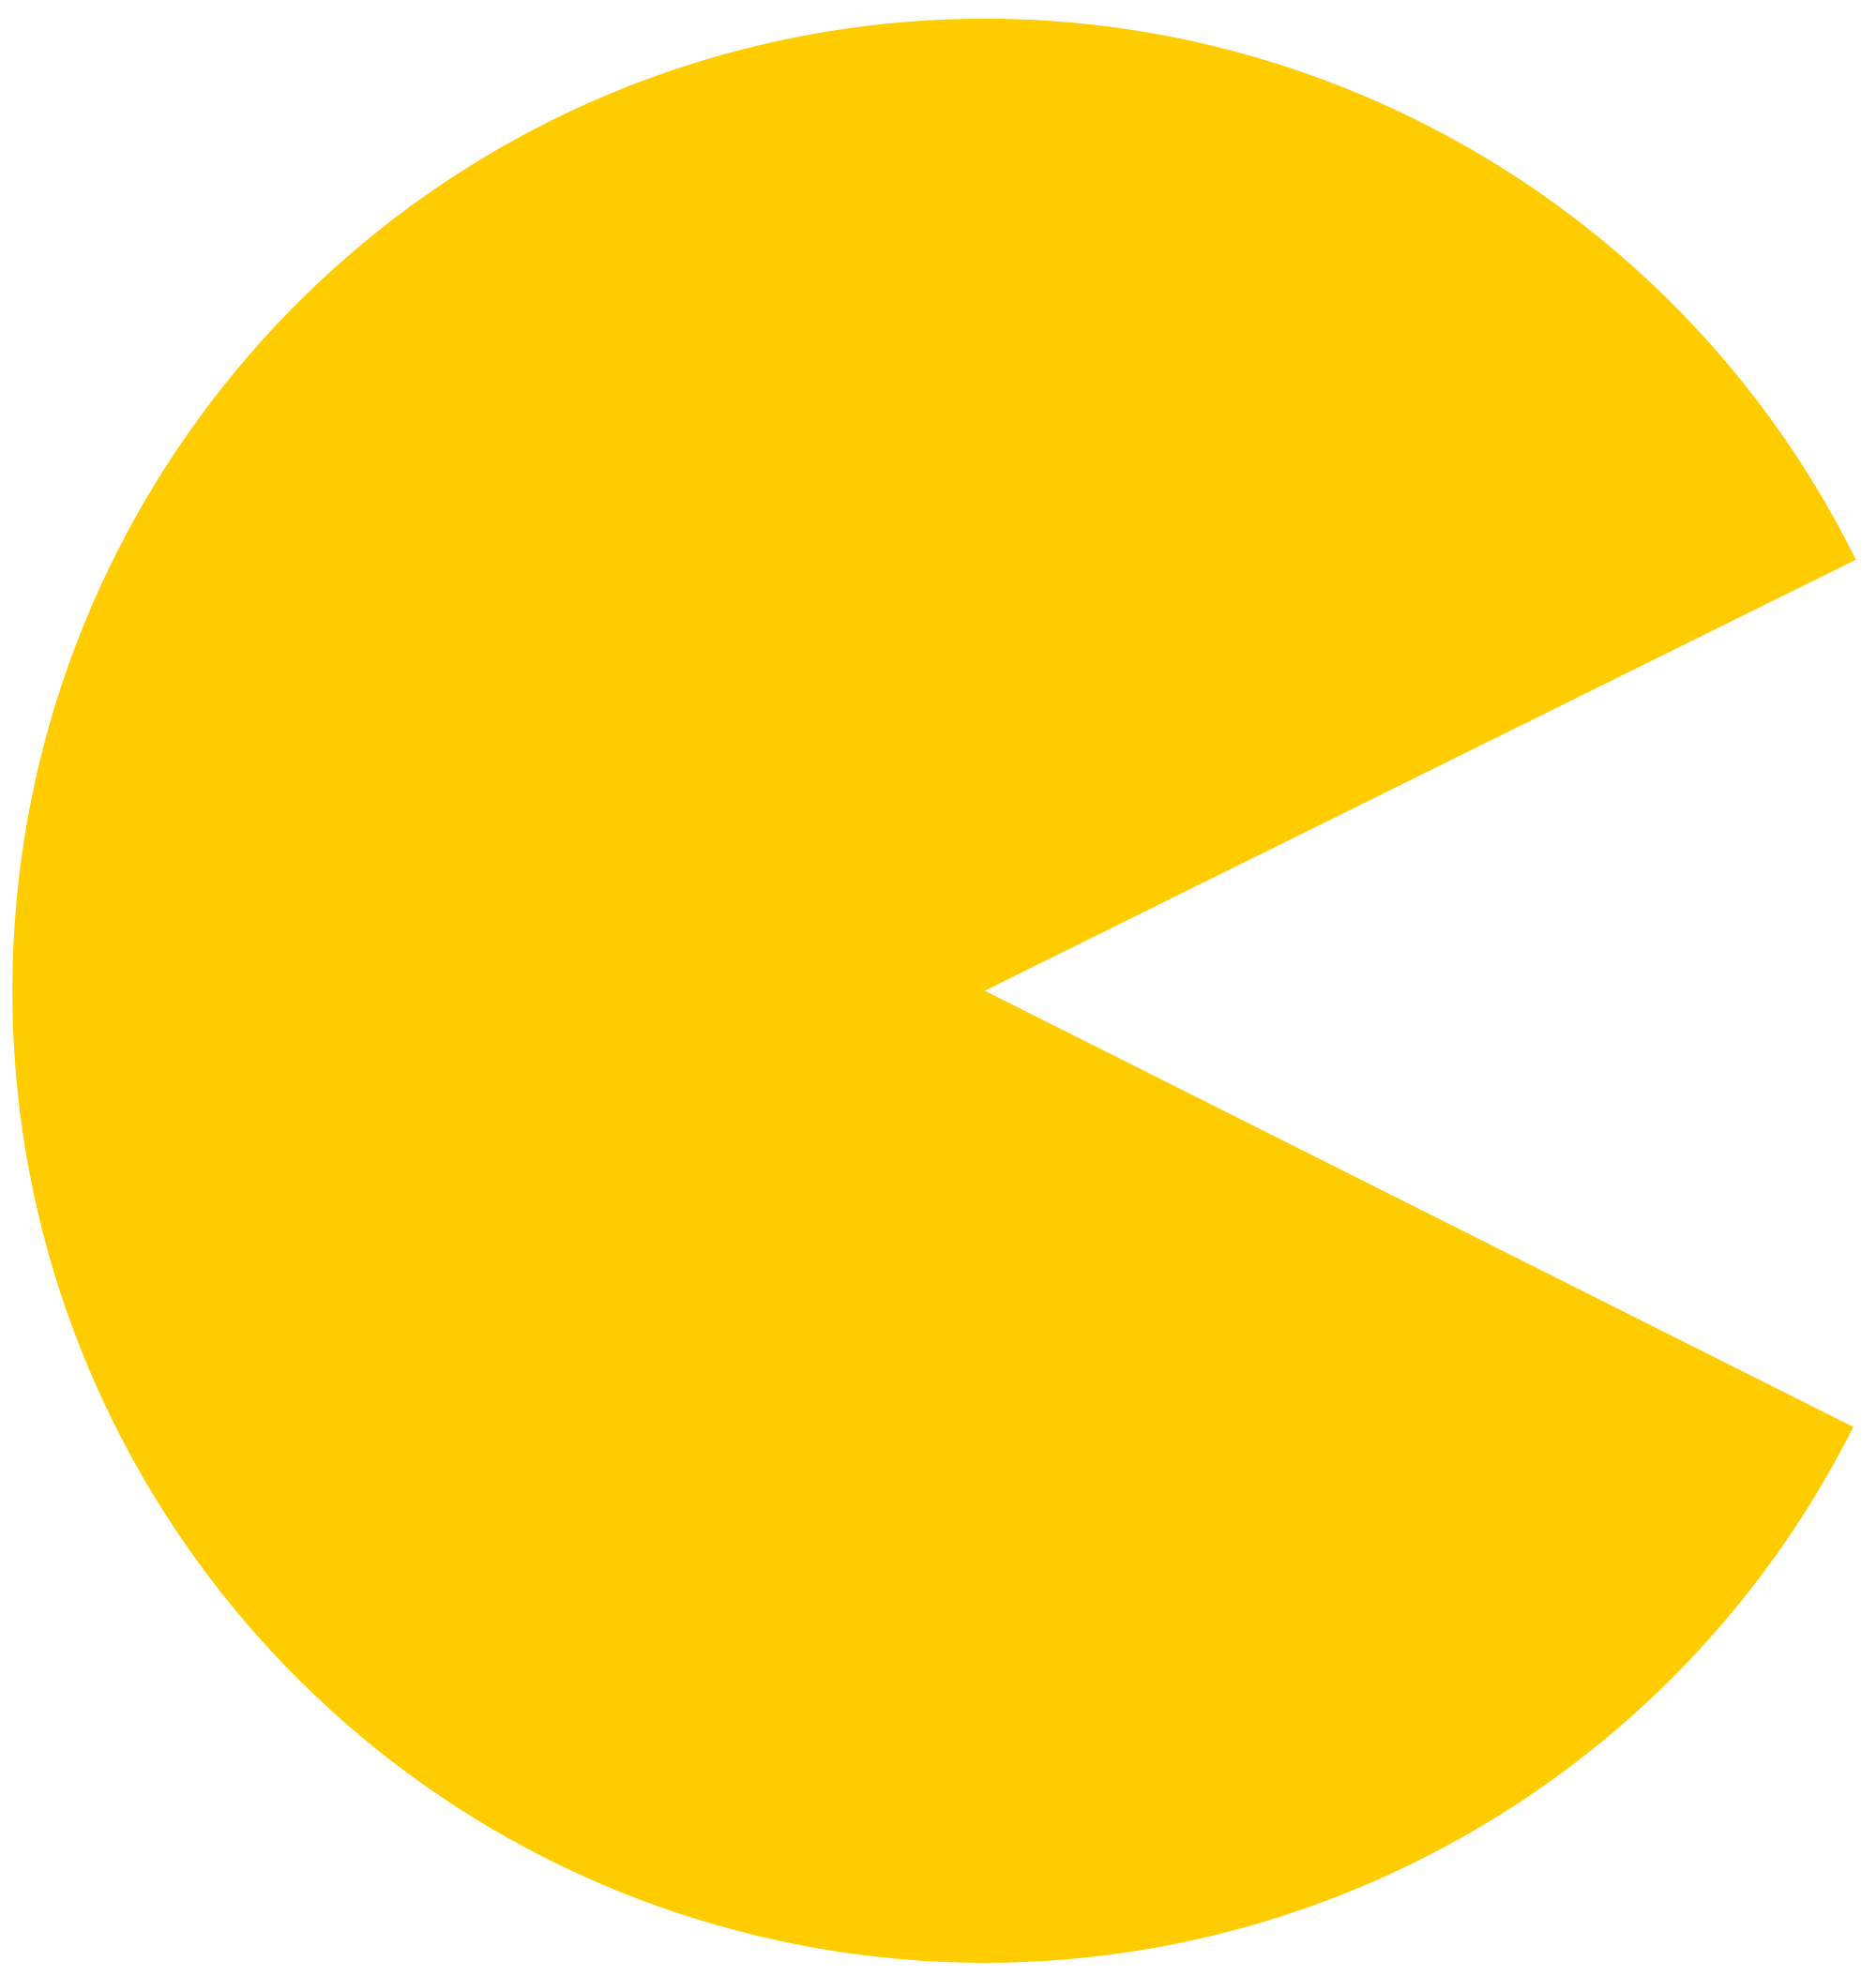 Pacman svg 80's. Px png interests